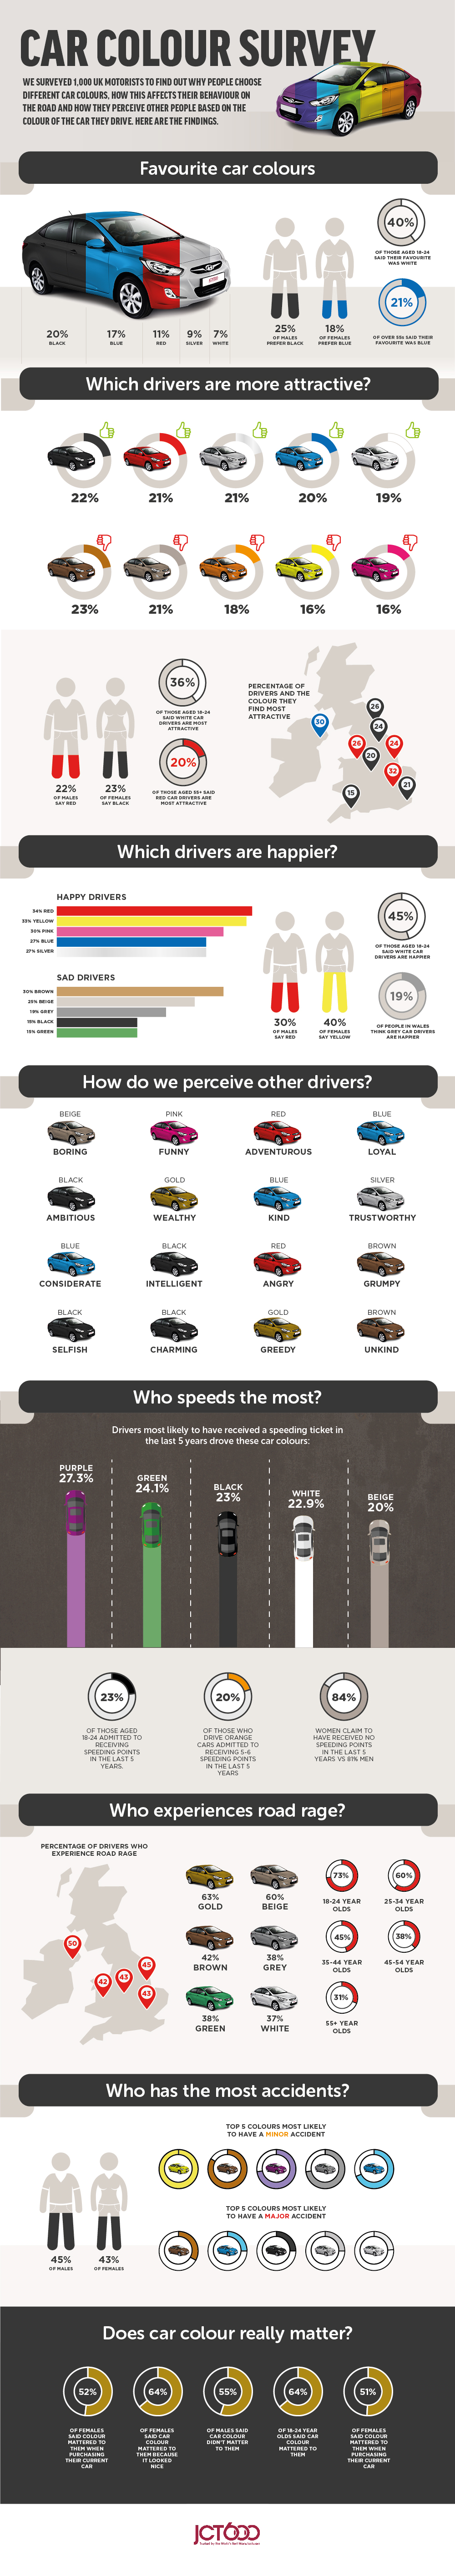 infographic showing results from car colours survey